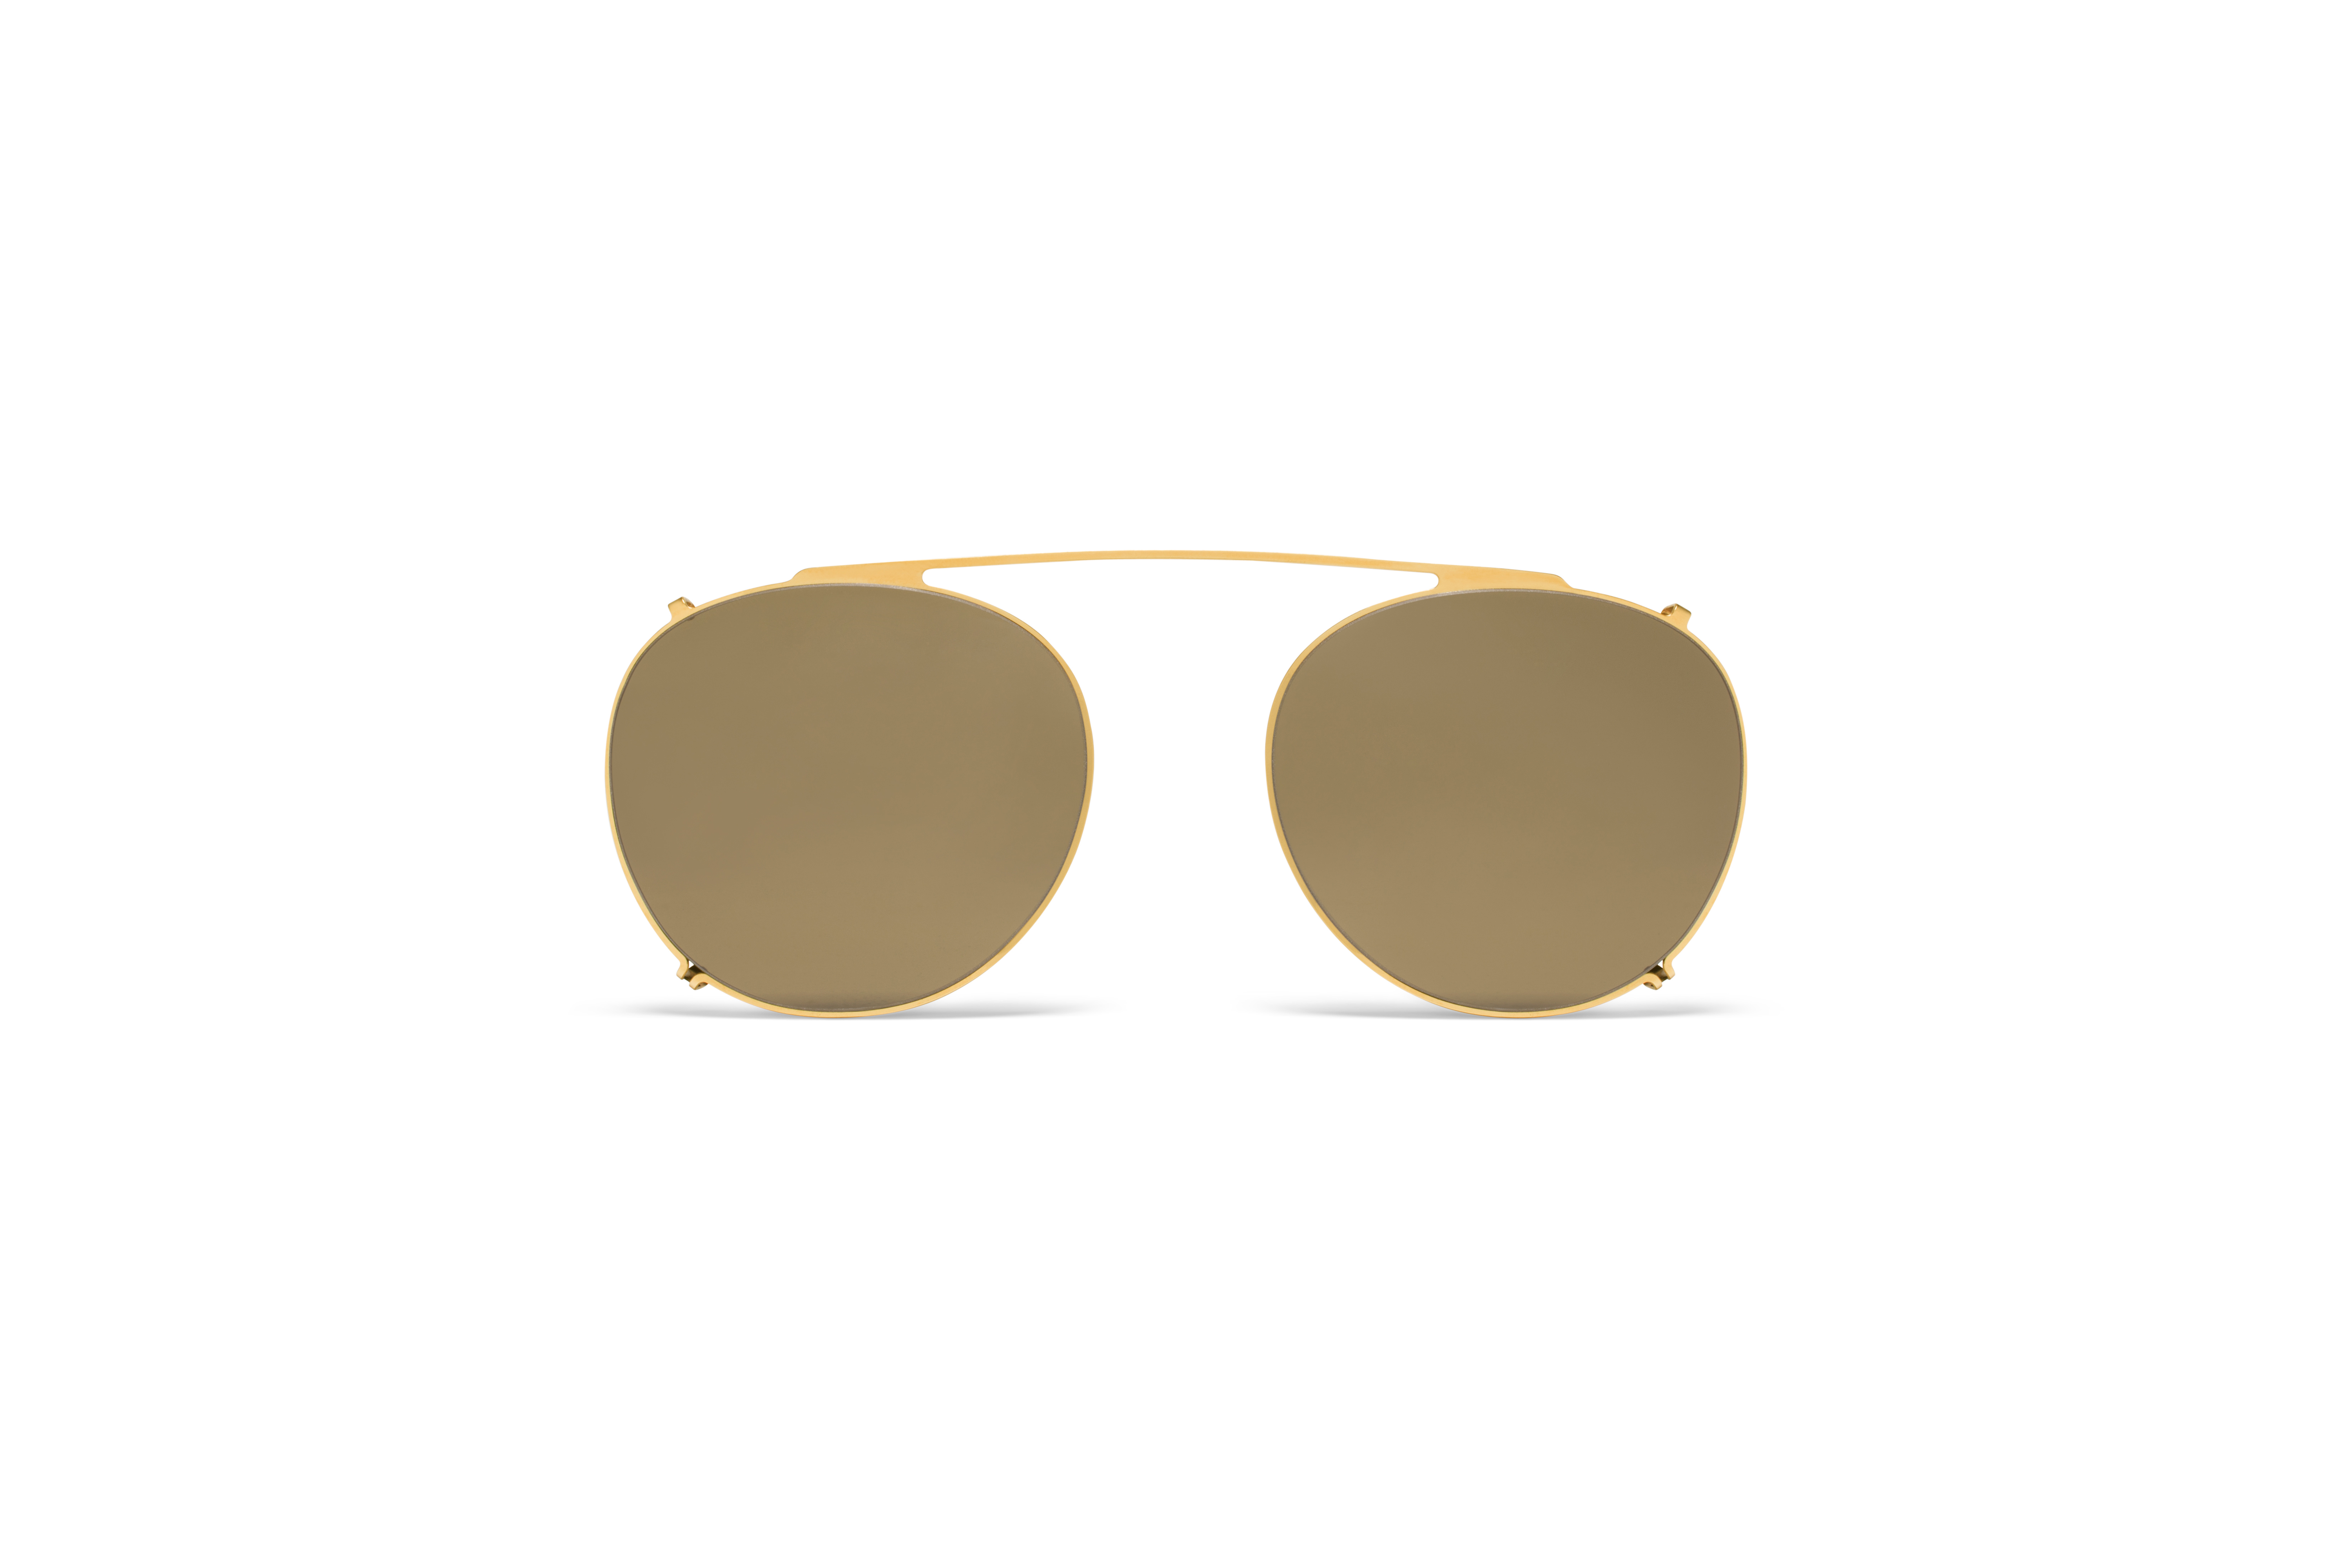 MYKITA Lite Acetate Miki Glossygold Rawbrown Solid5810c648e0f4a